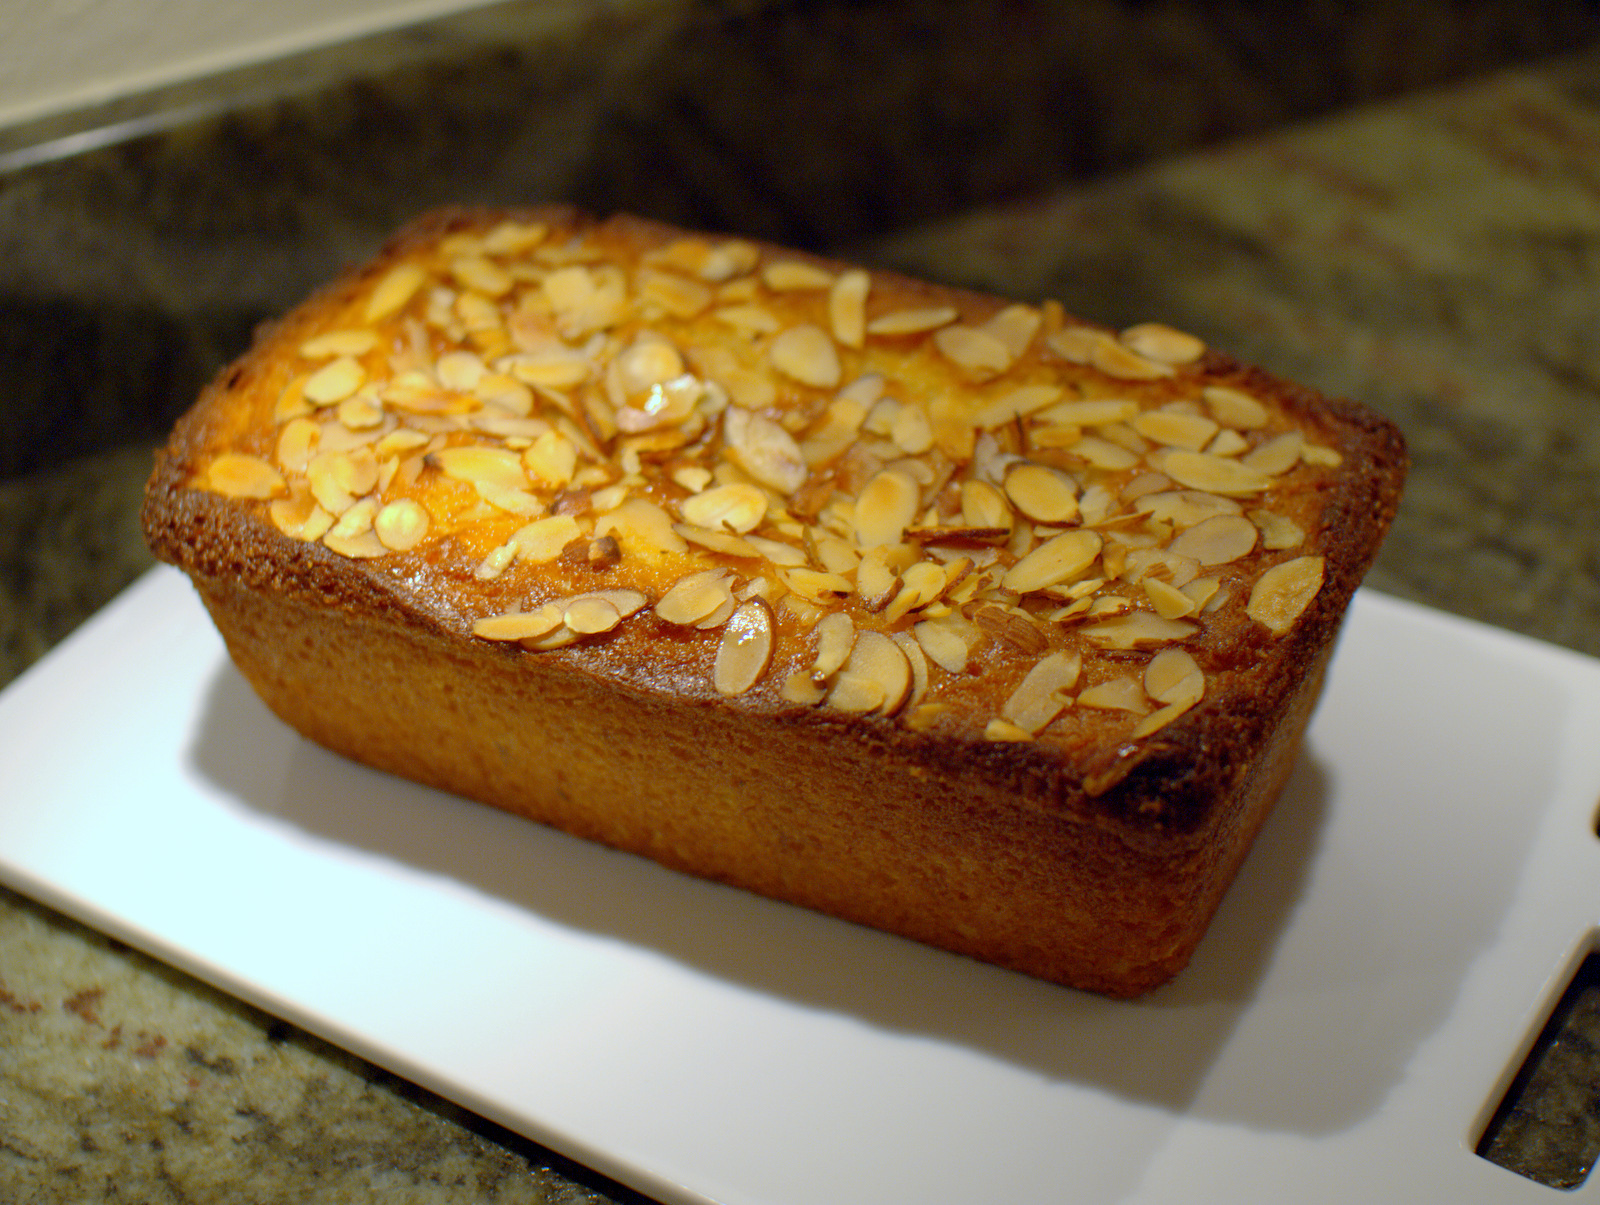 almond and rose water cake with orange syrup